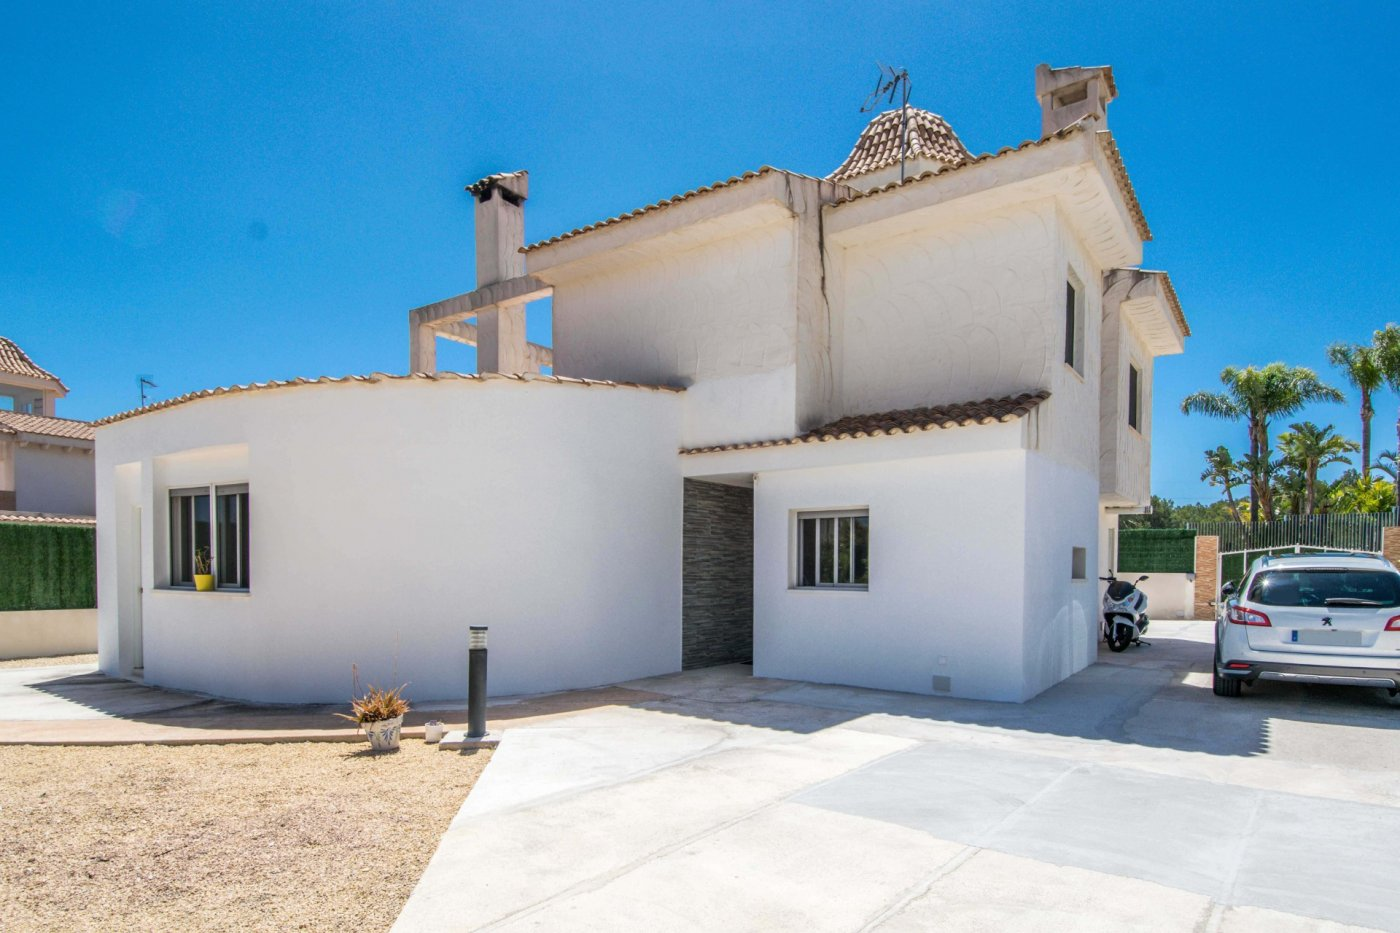 Villa for sale in La Nucia